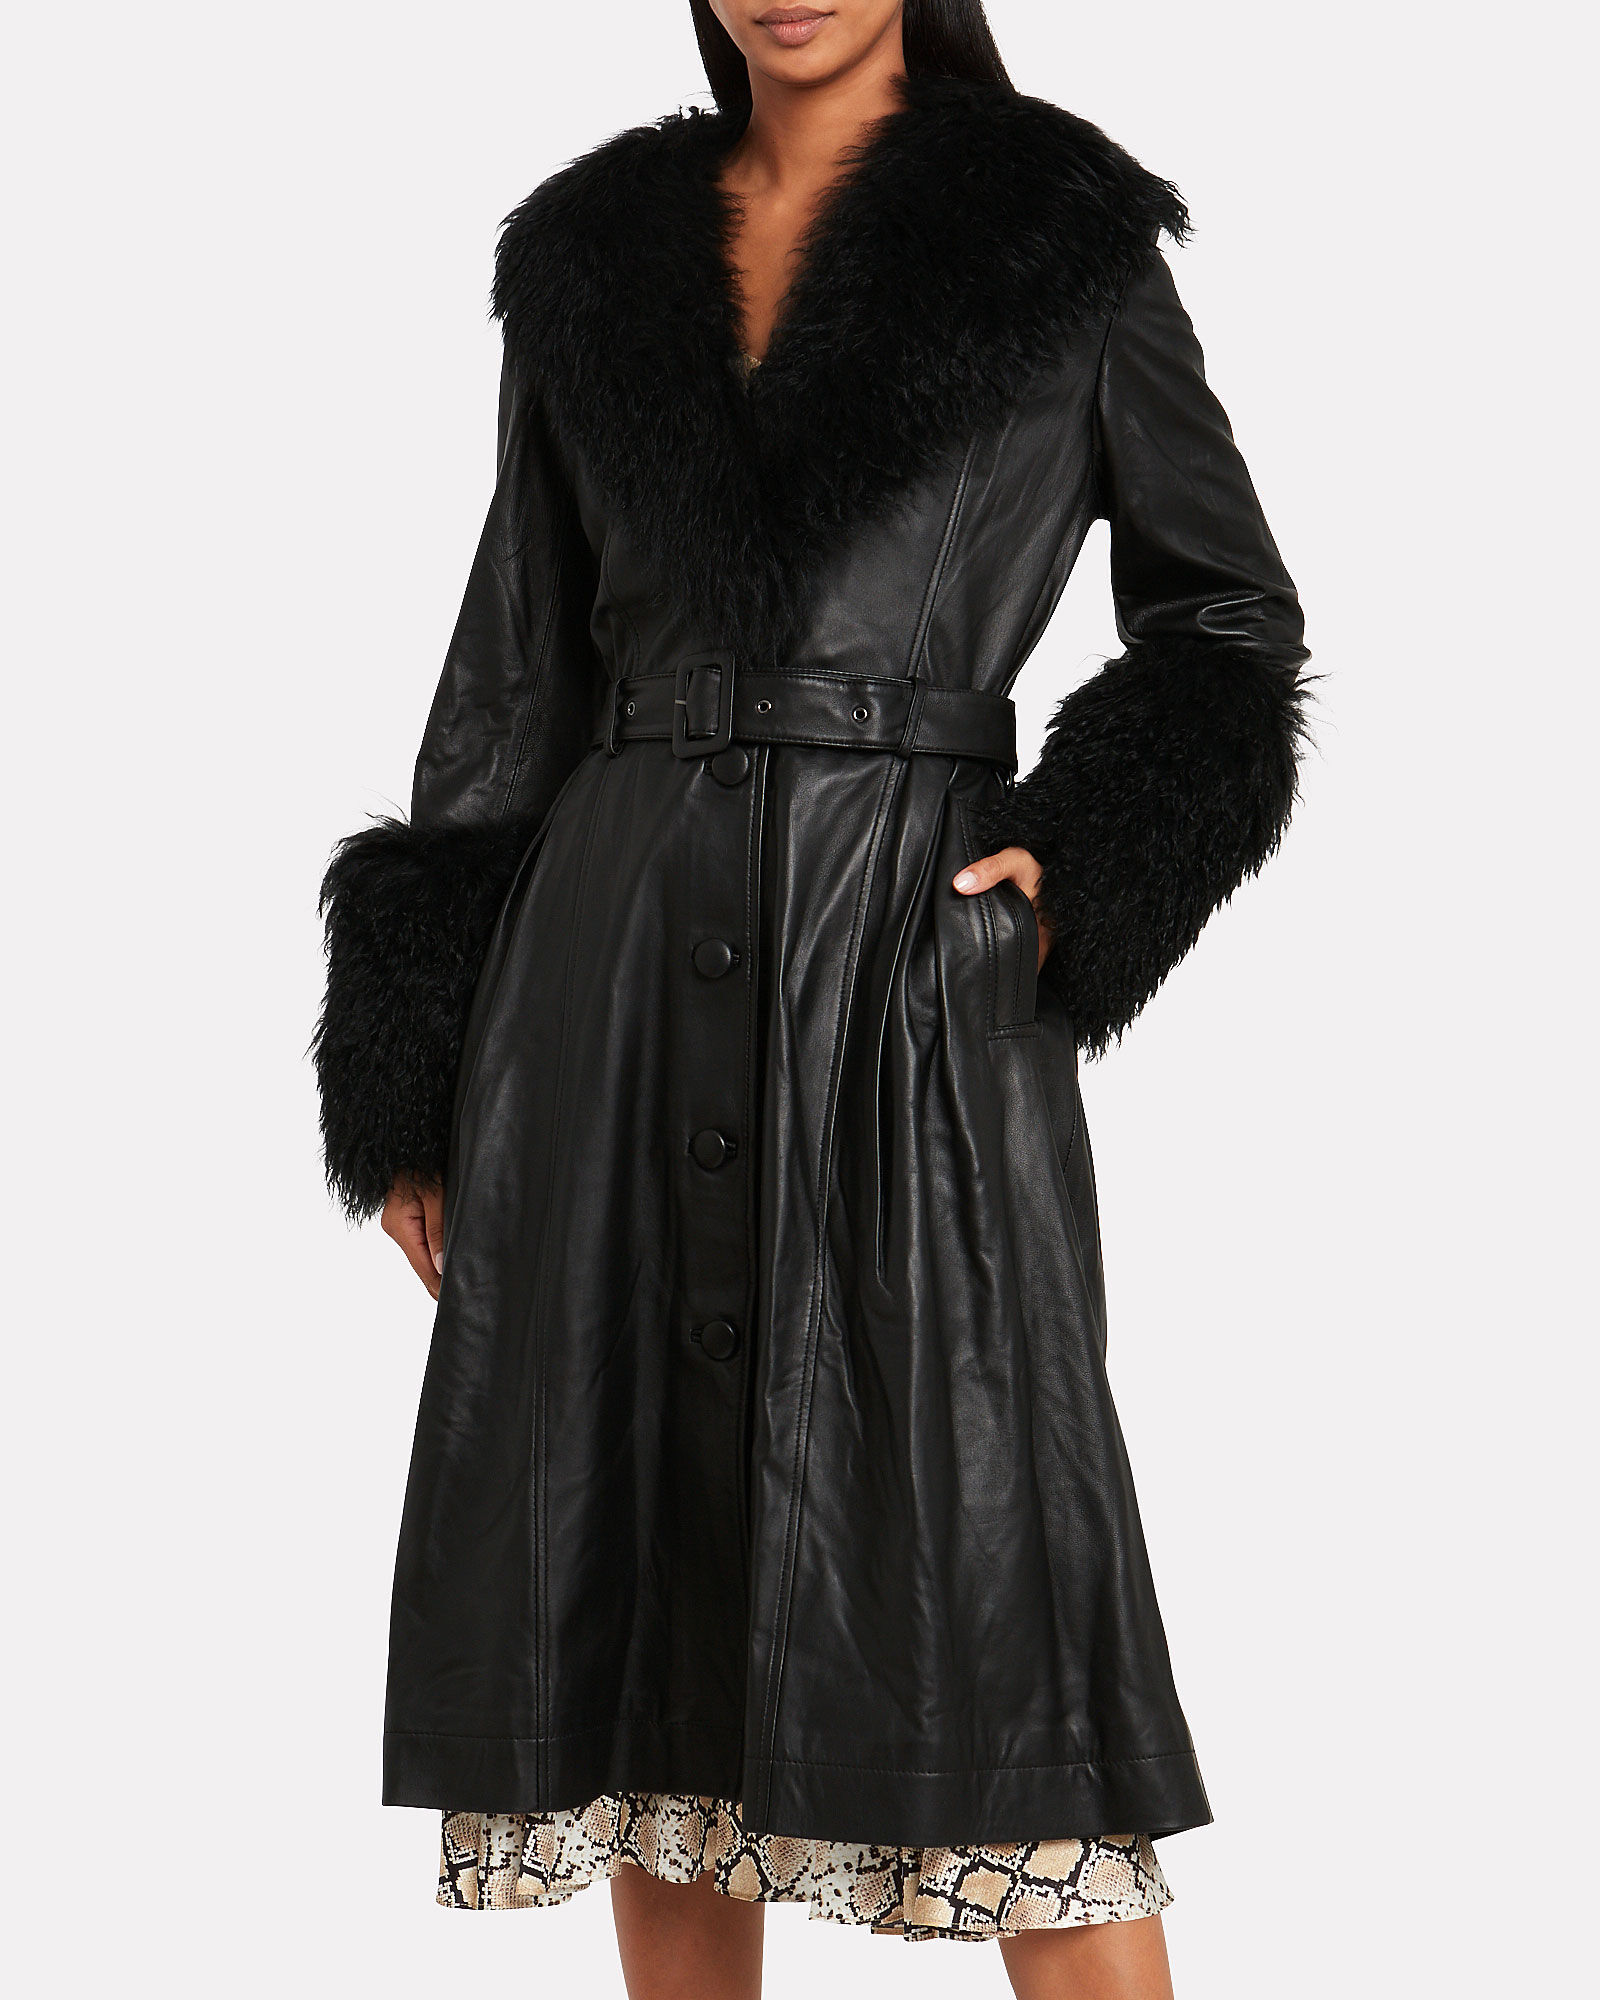 Foxy Shearling Patent Leather Coat, BLACK, hi-res